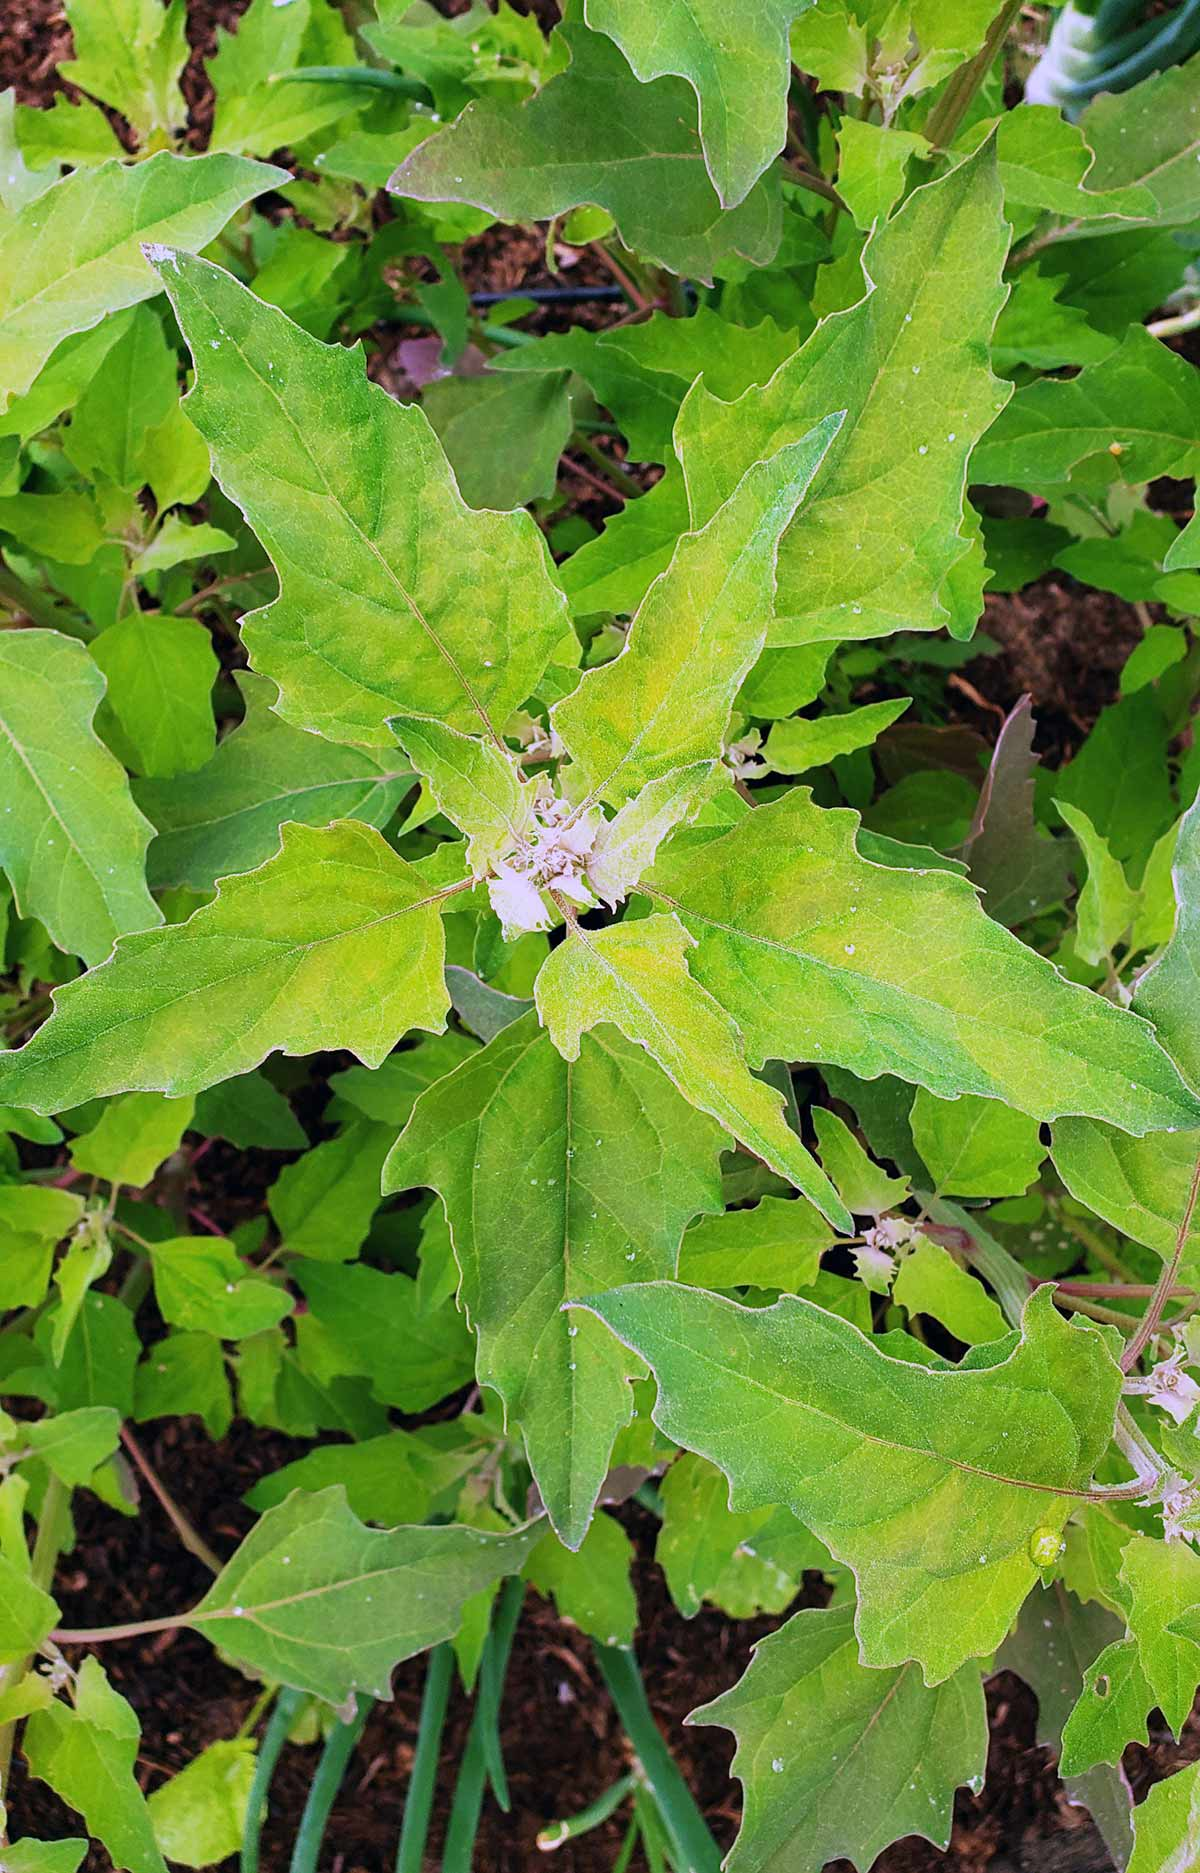 lambsquarters growing in the garden